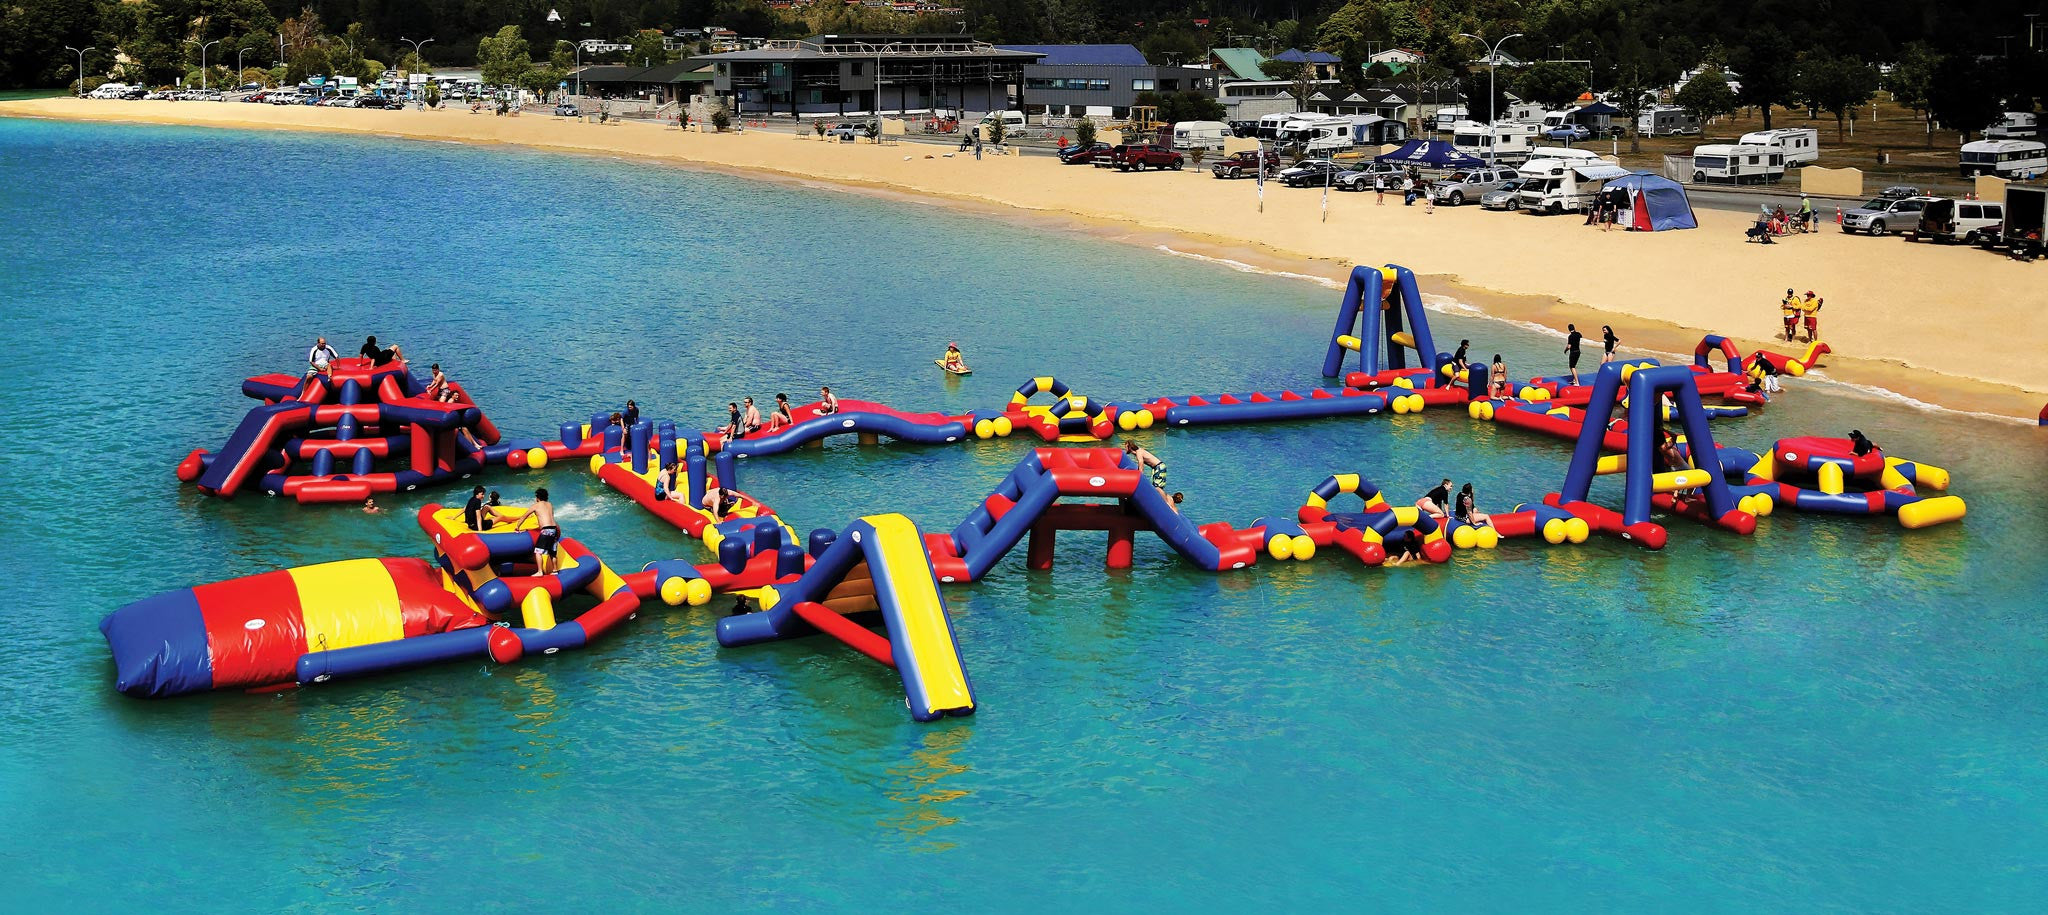 Commercial Inflatable Waterpark Aflex Aqua Adventure